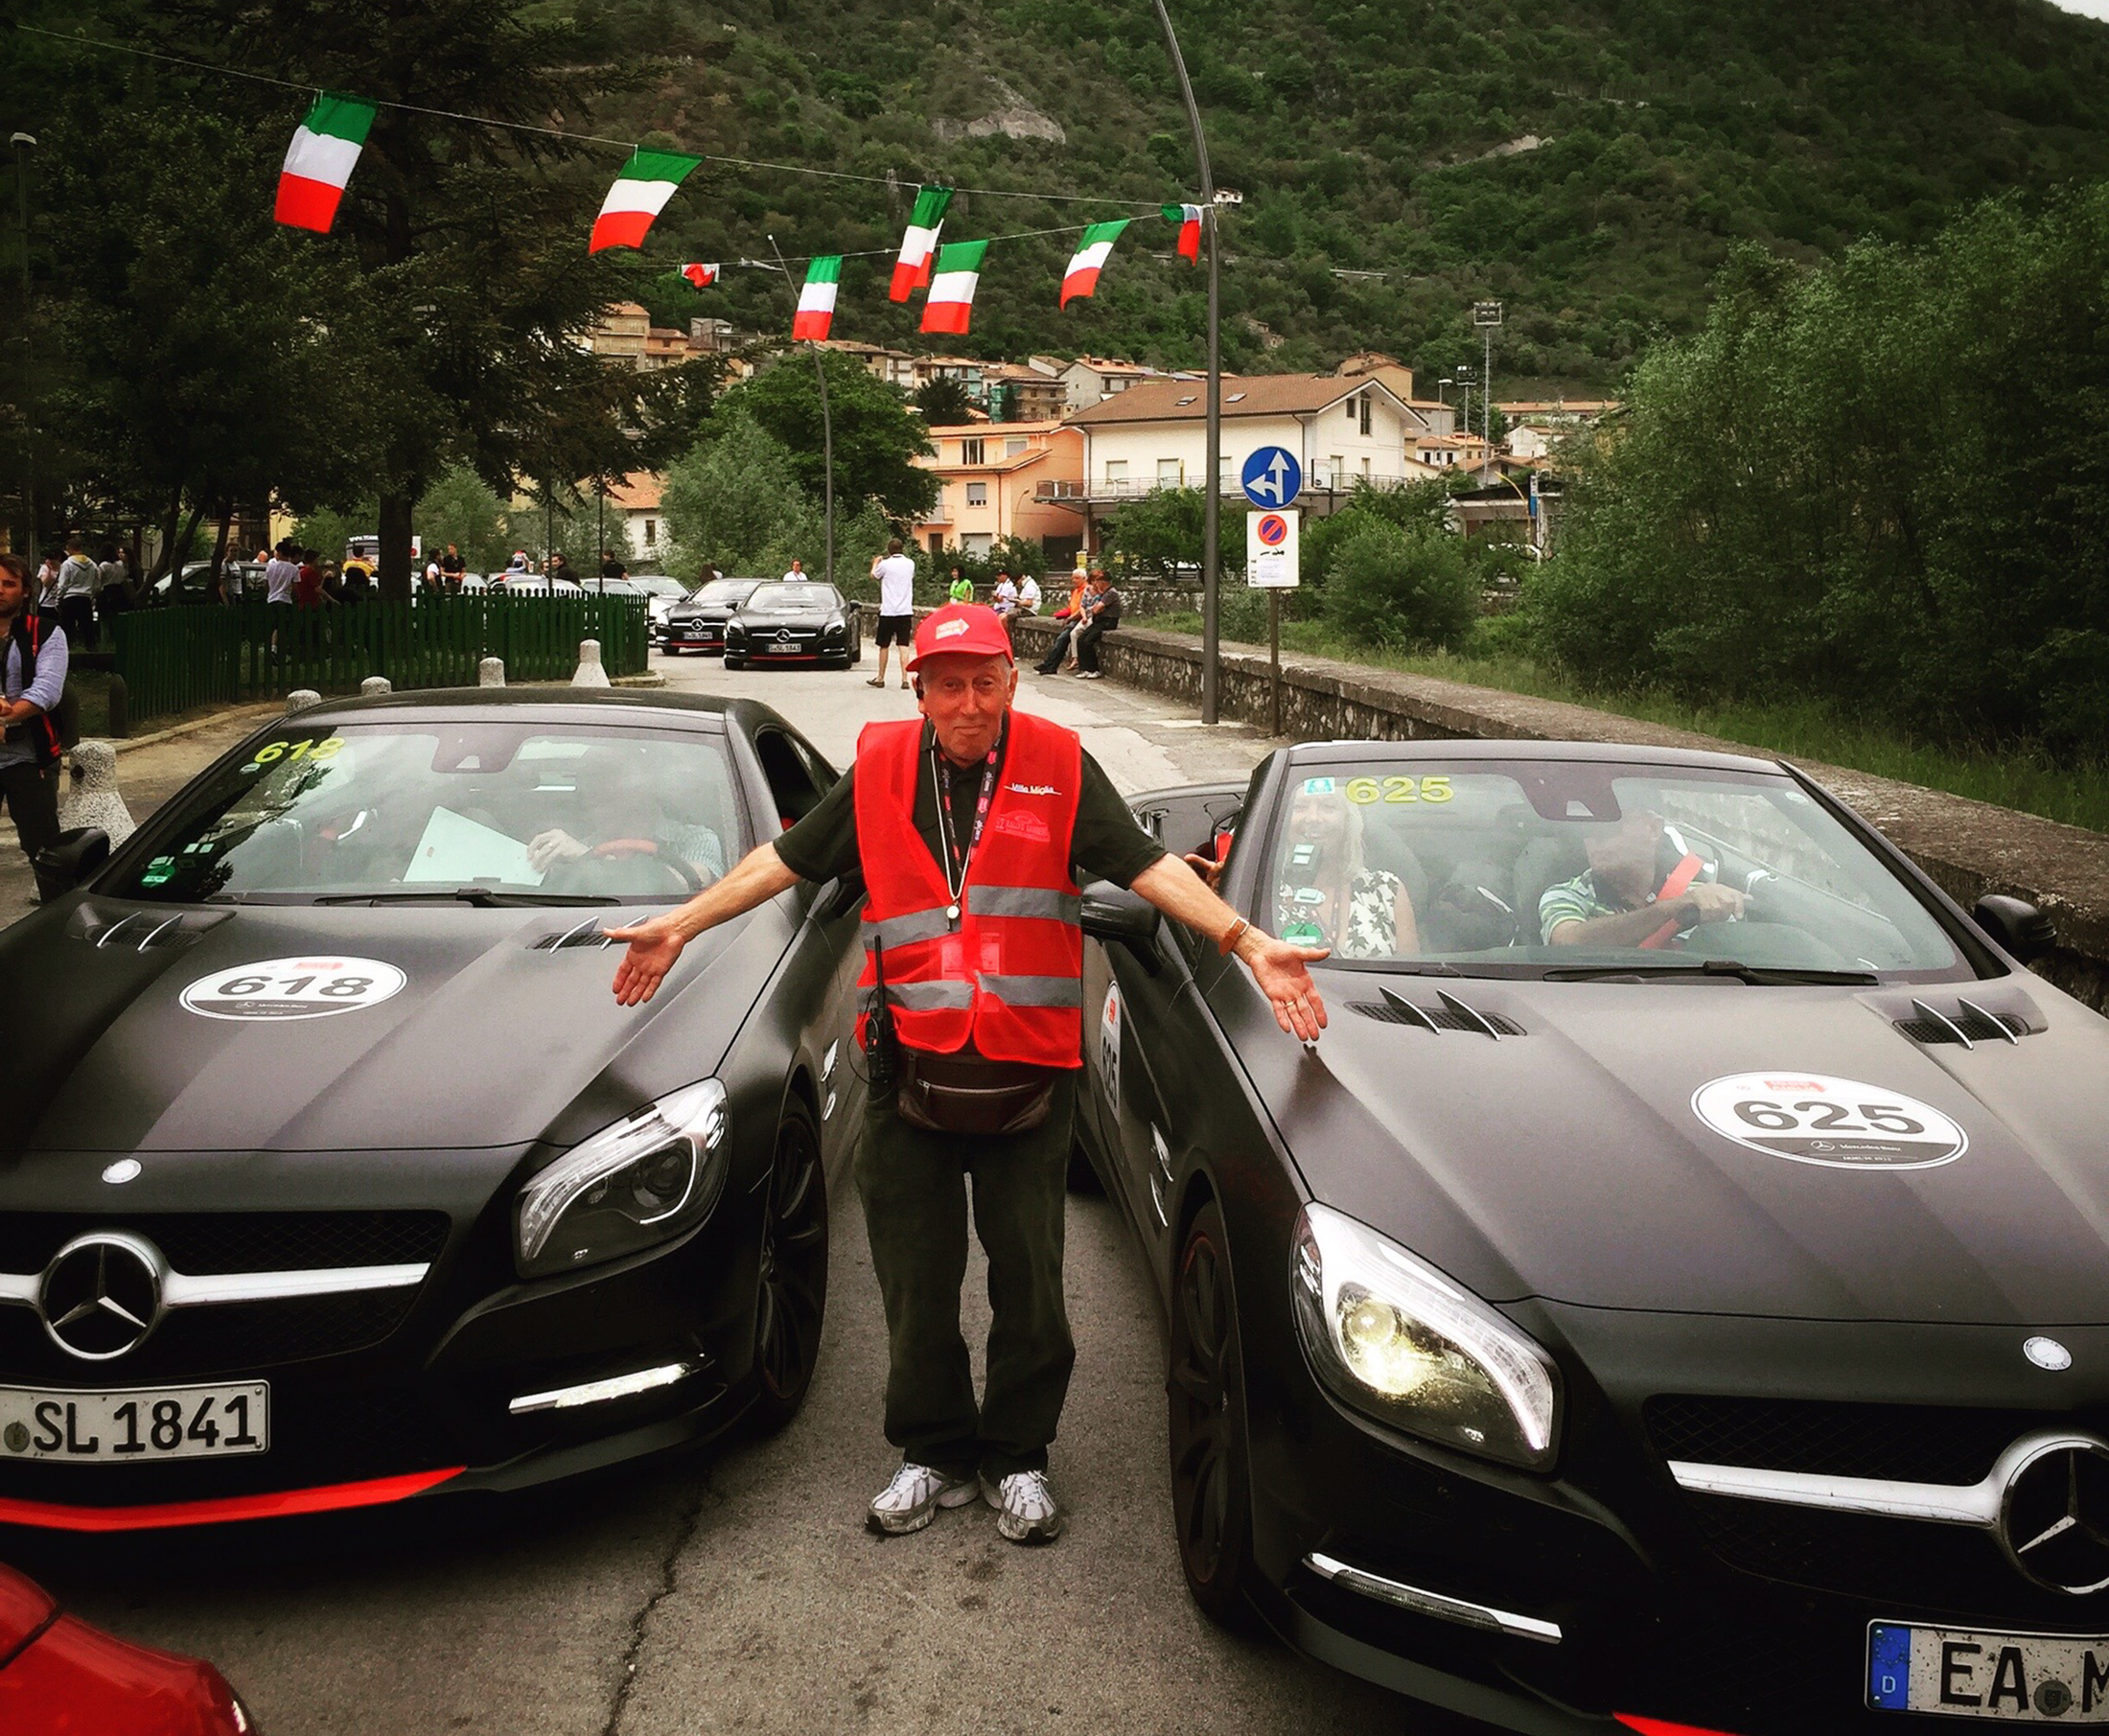 Coolhunting: Italy's Insane Mille Miglia